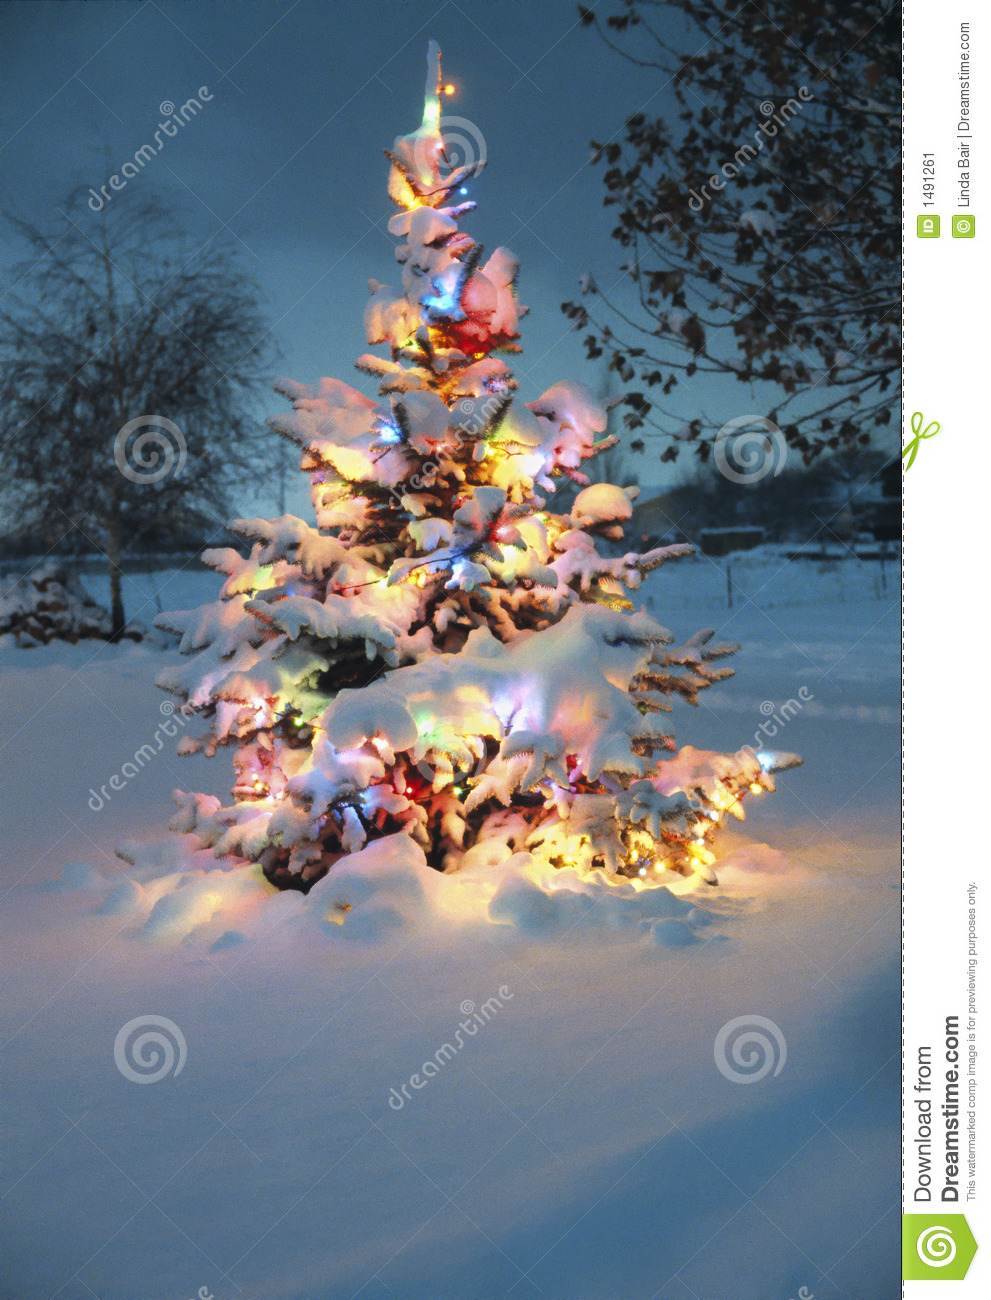 snow covered christmas tree stock image image of achr. Black Bedroom Furniture Sets. Home Design Ideas